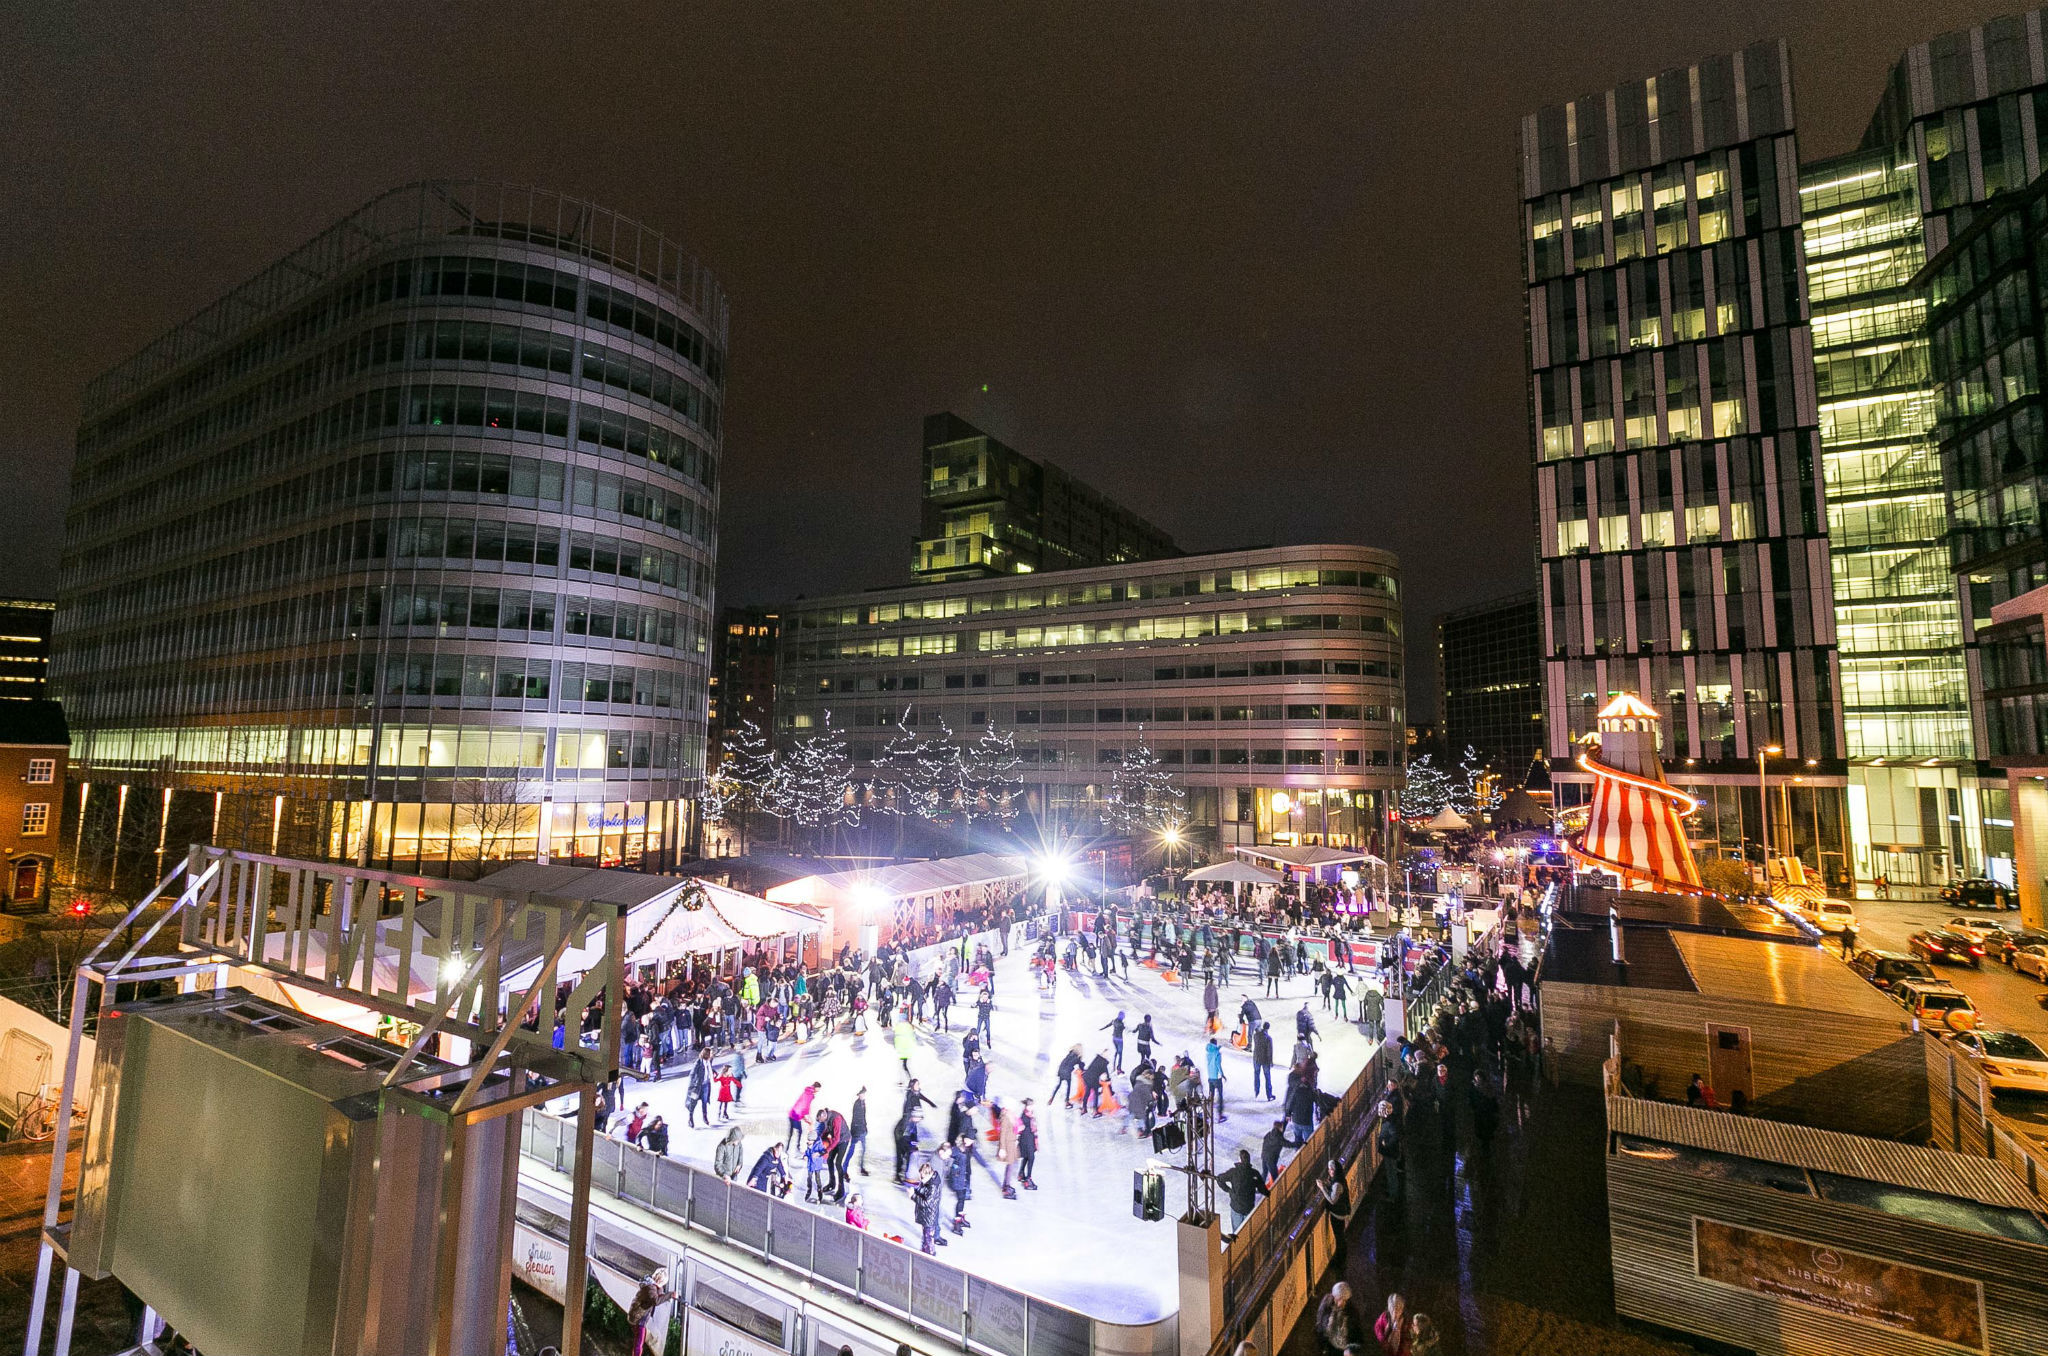 Get your skates on: Manchester's outdoor ice rinks